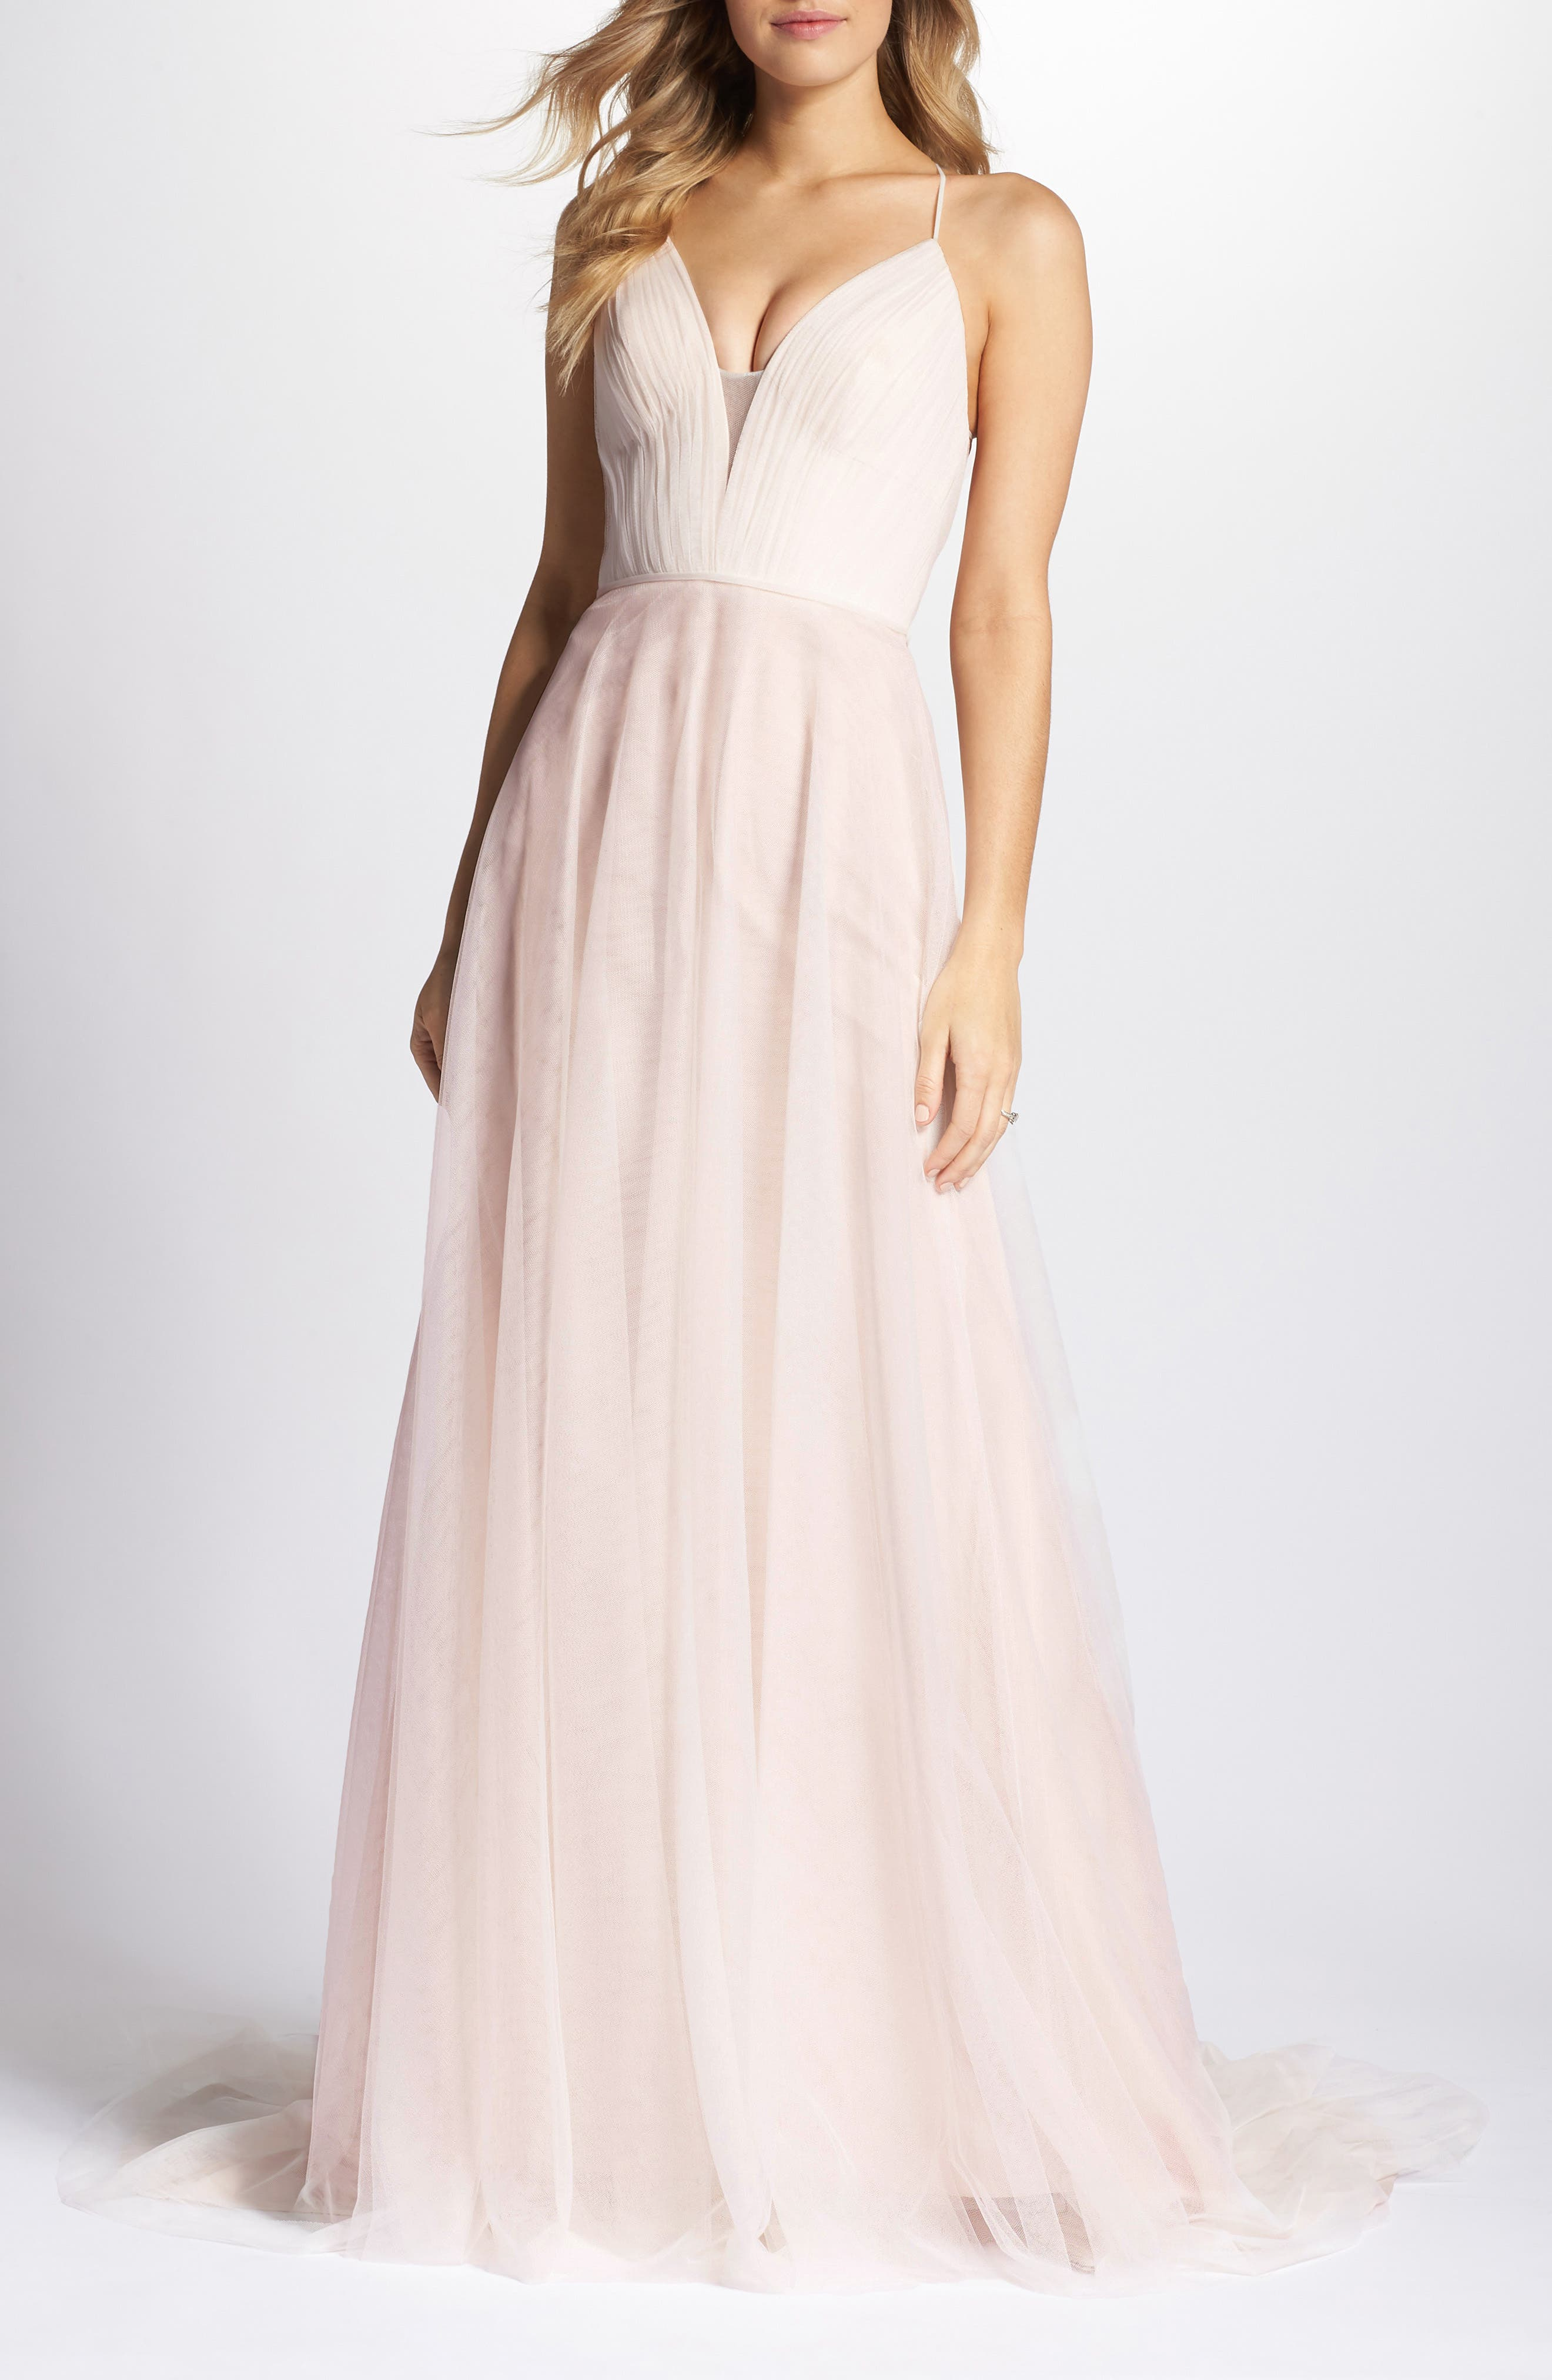 Plunging A-Line Gown,                             Main thumbnail 1, color,                             IVORY/TEA ROSE